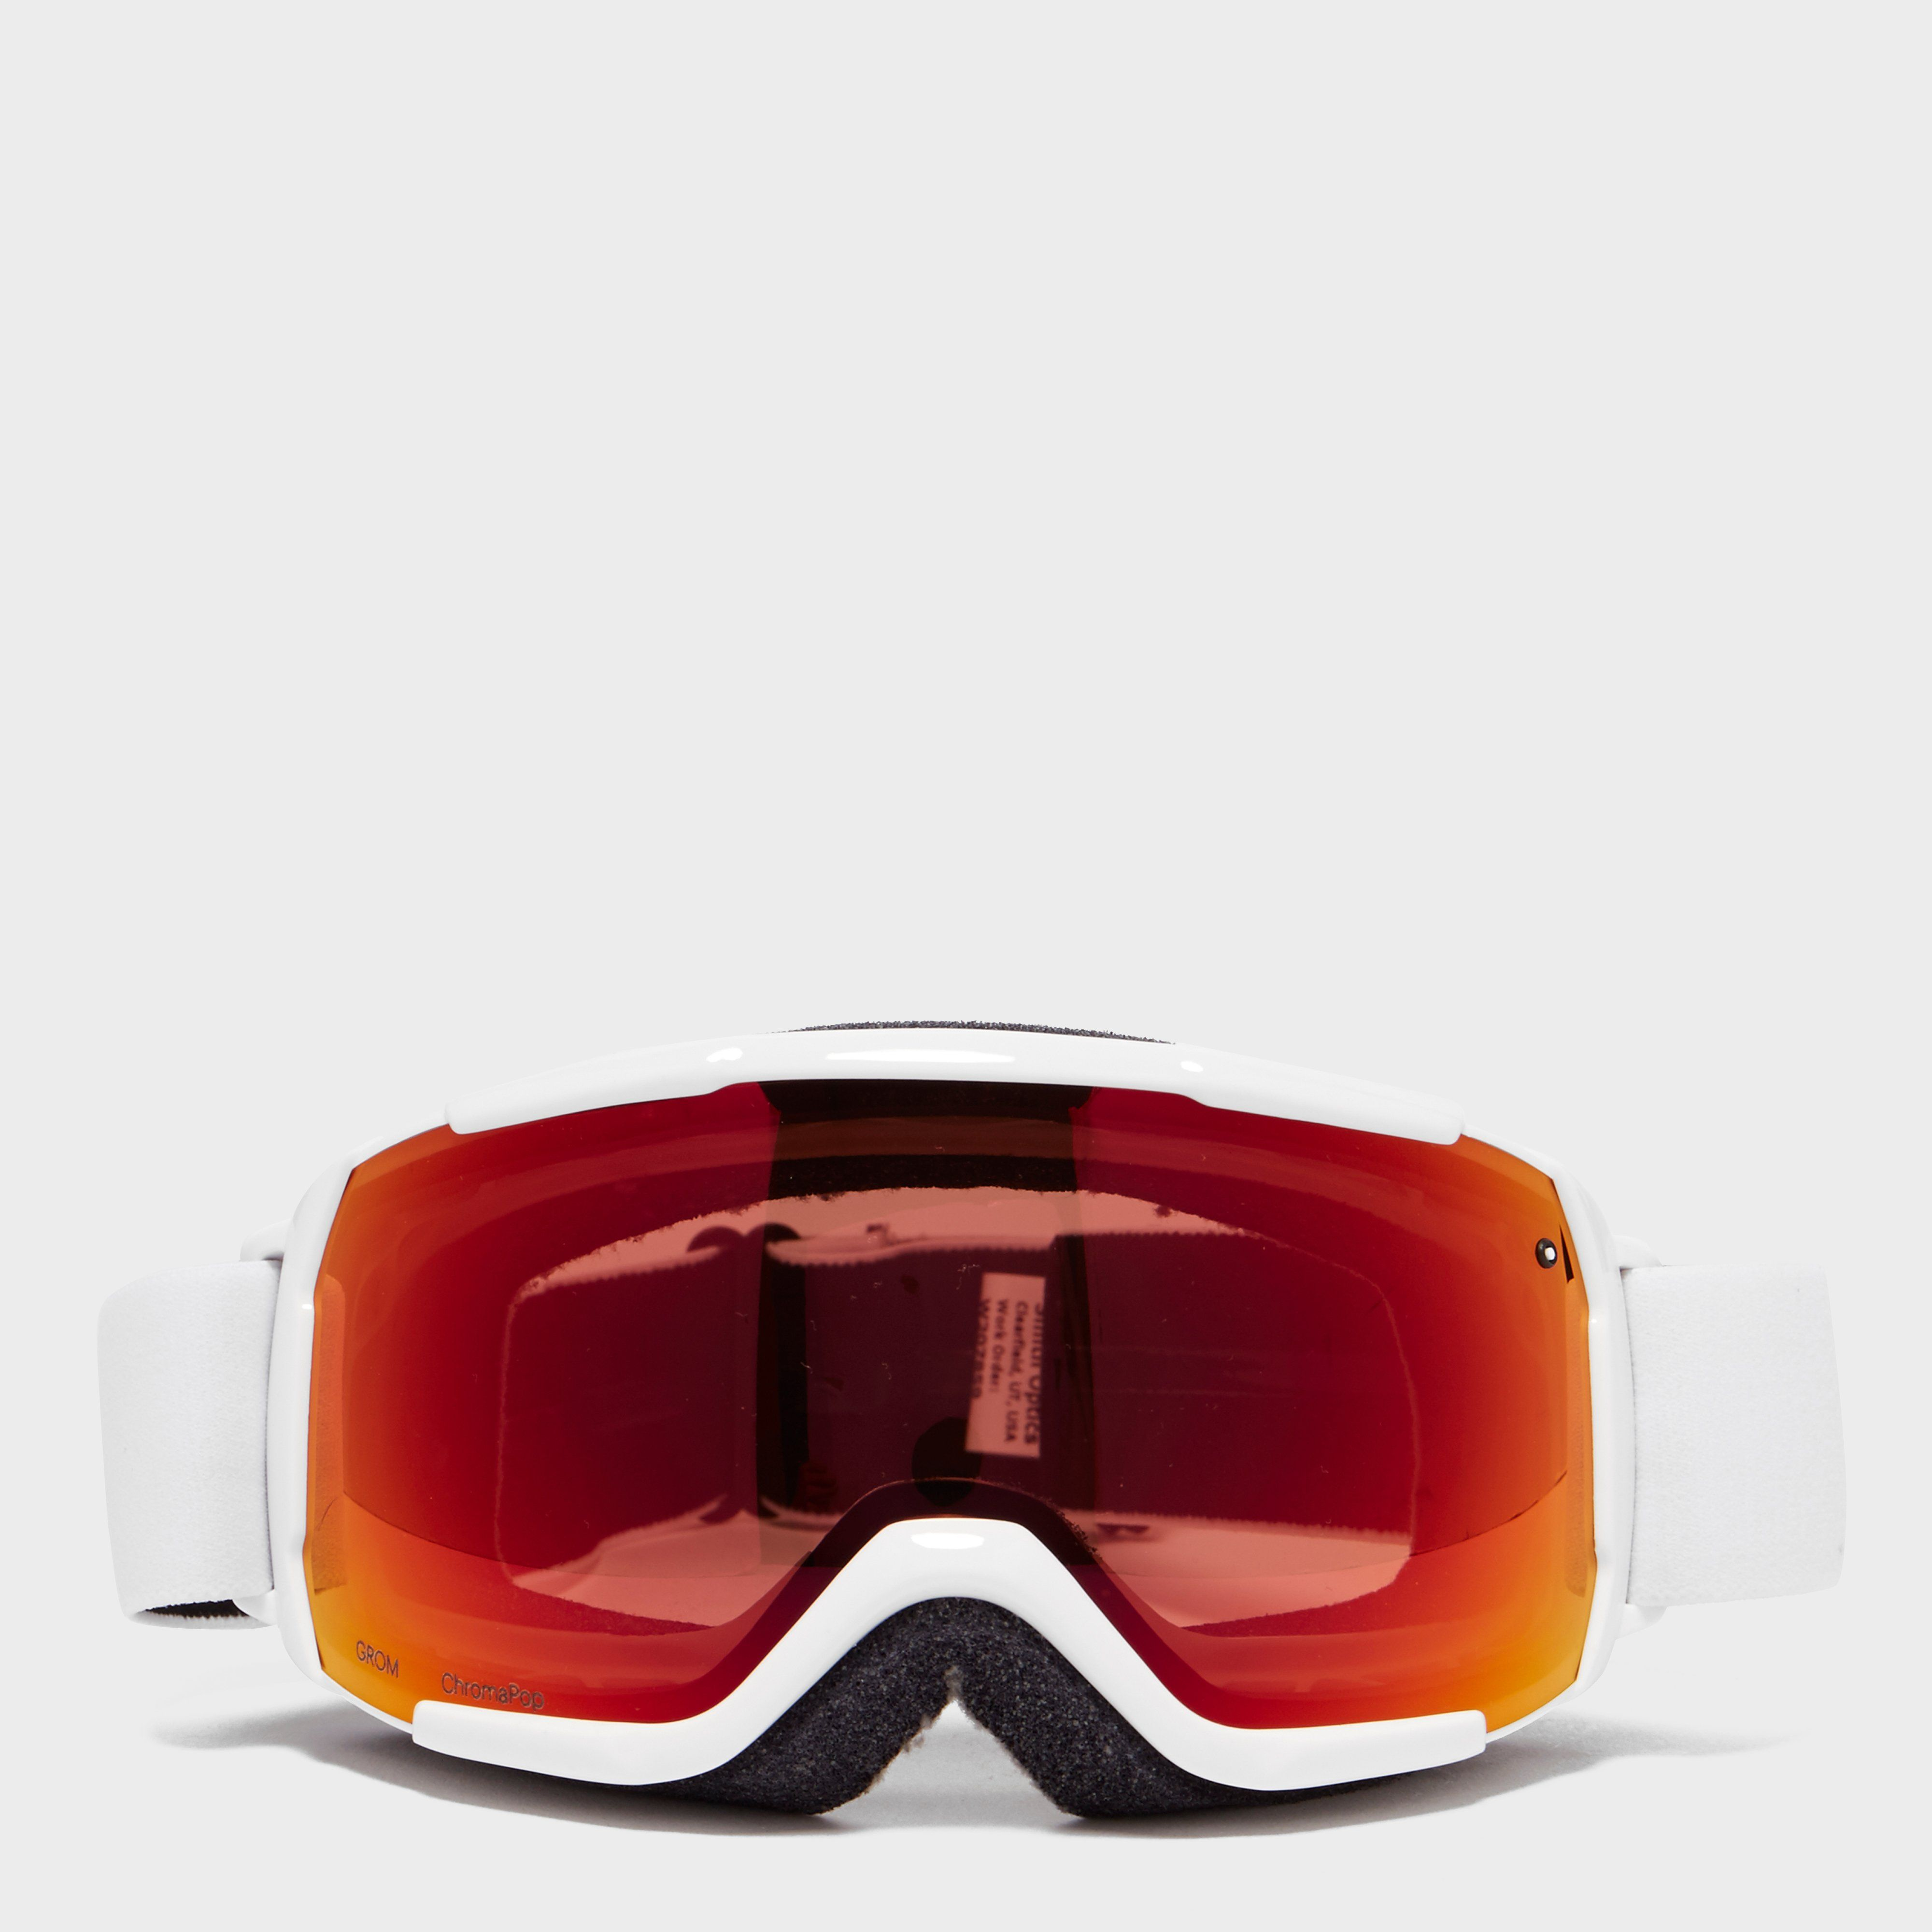 SMITH Men's Grom Ski Goggles